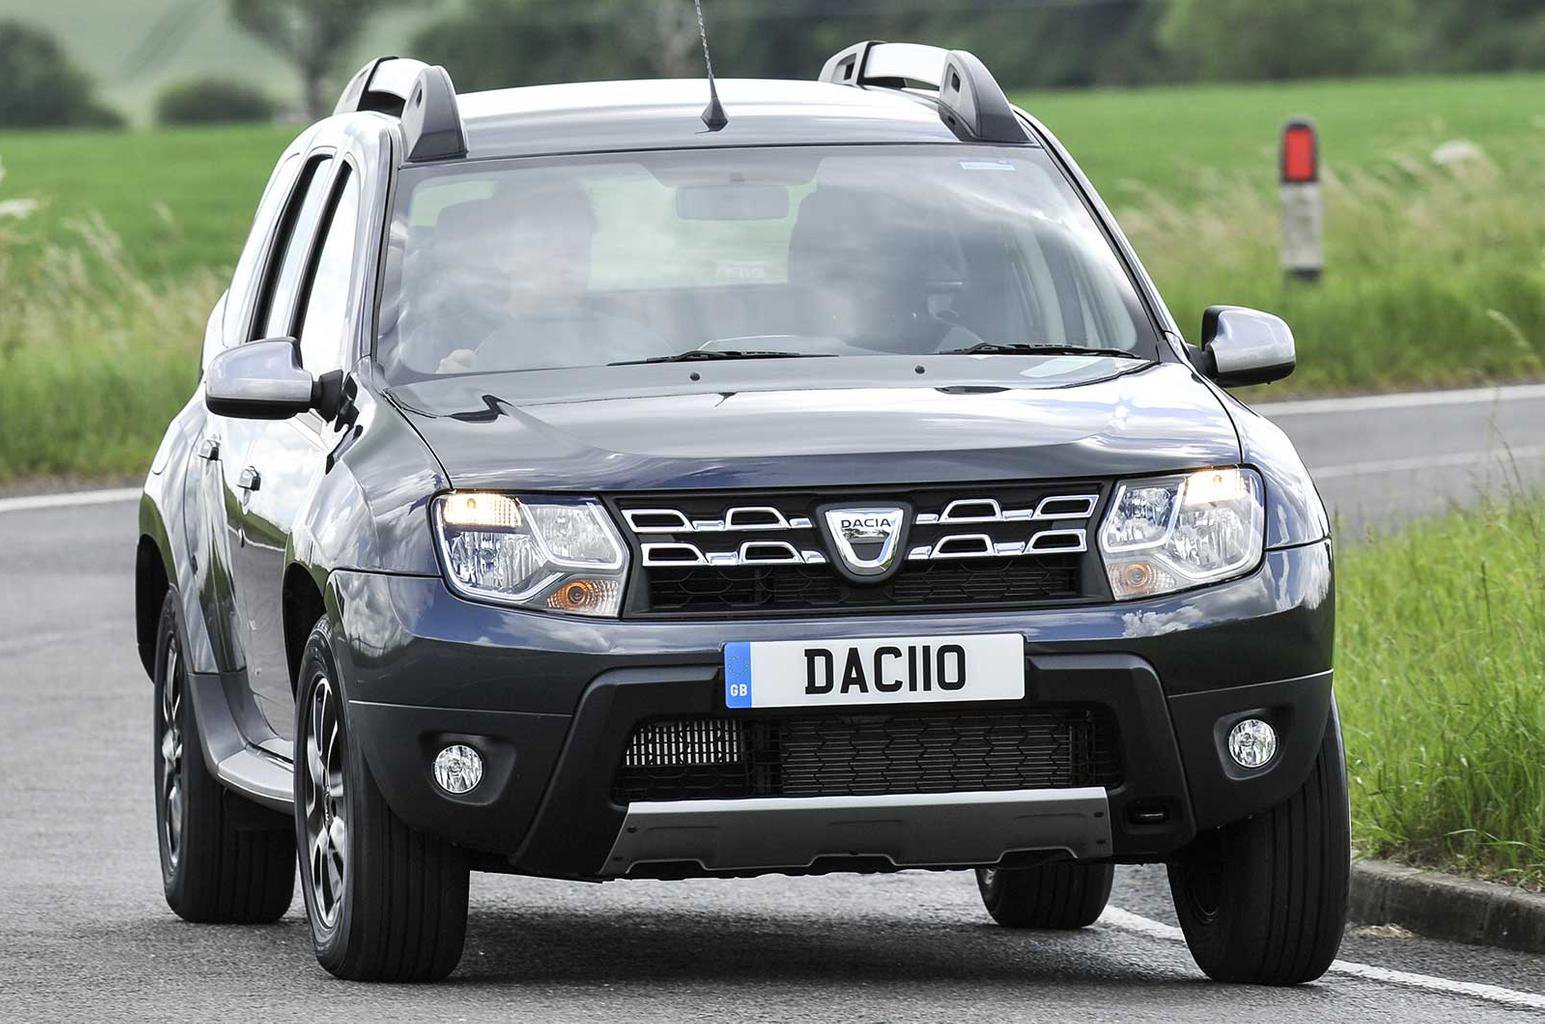 Facelifted Dacia Duster to go on sale in July